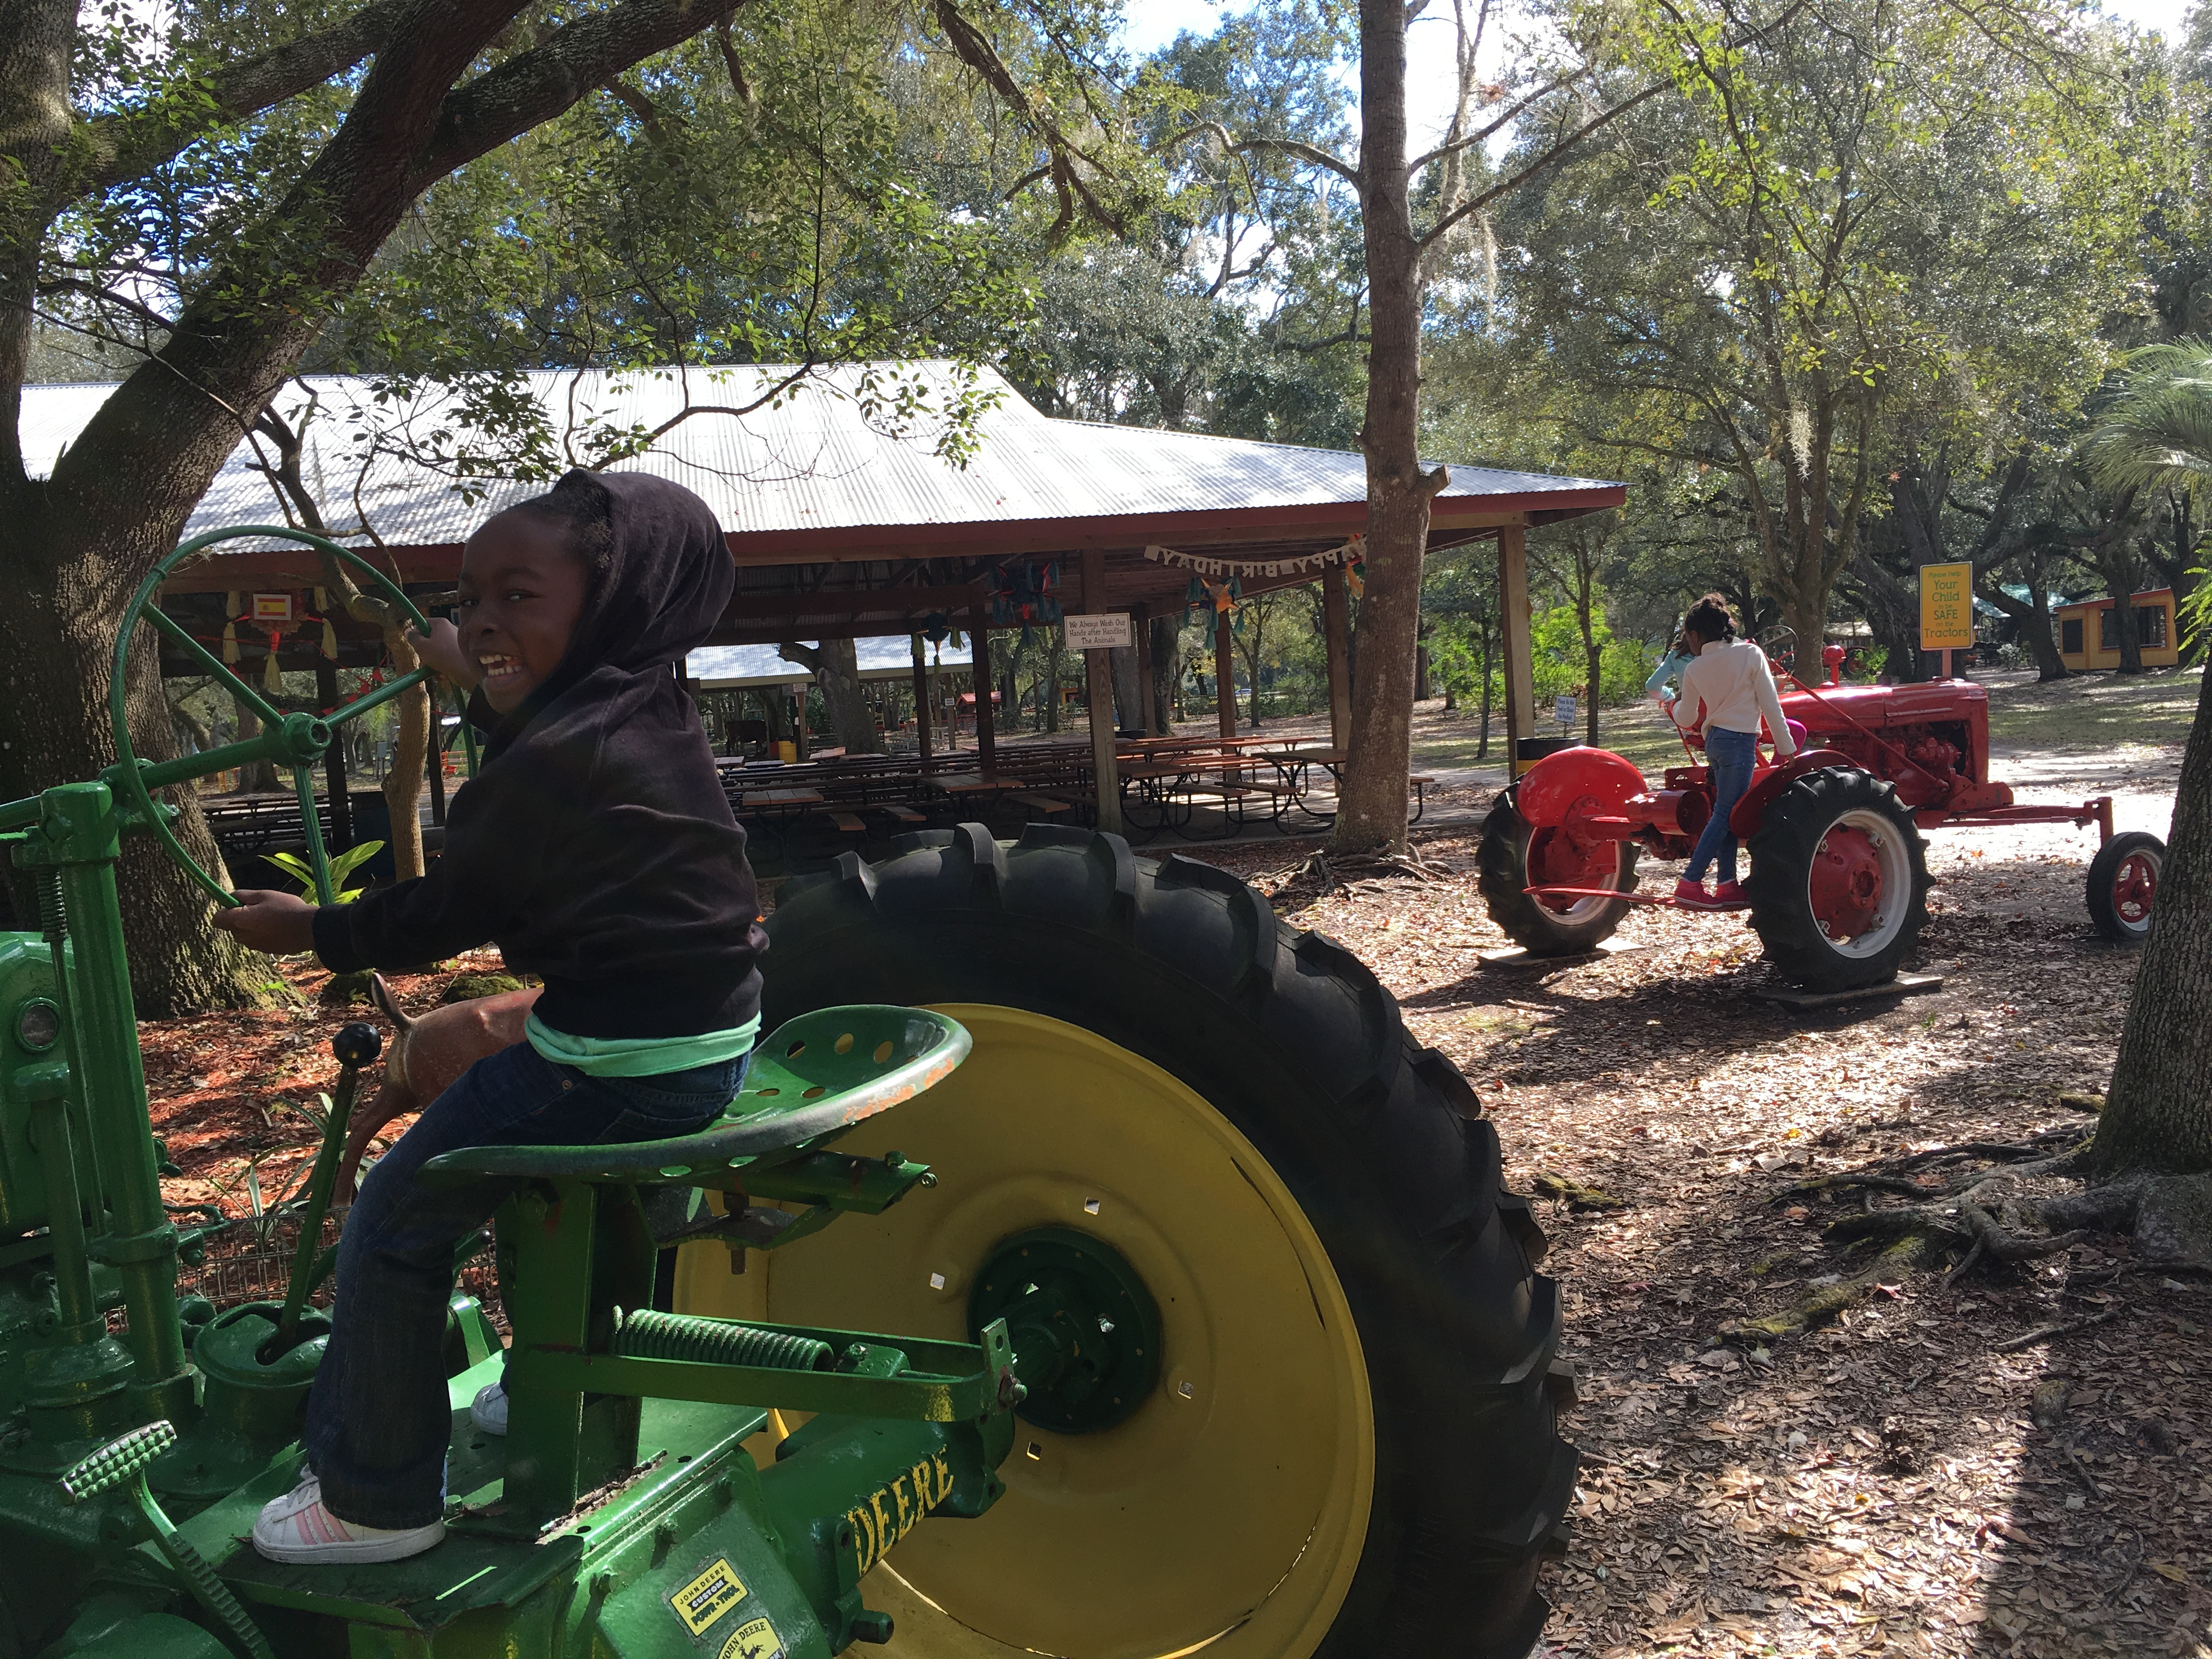 I love that the farm had a dozen of these tractors all over the grounds, just for climbing and playing on.